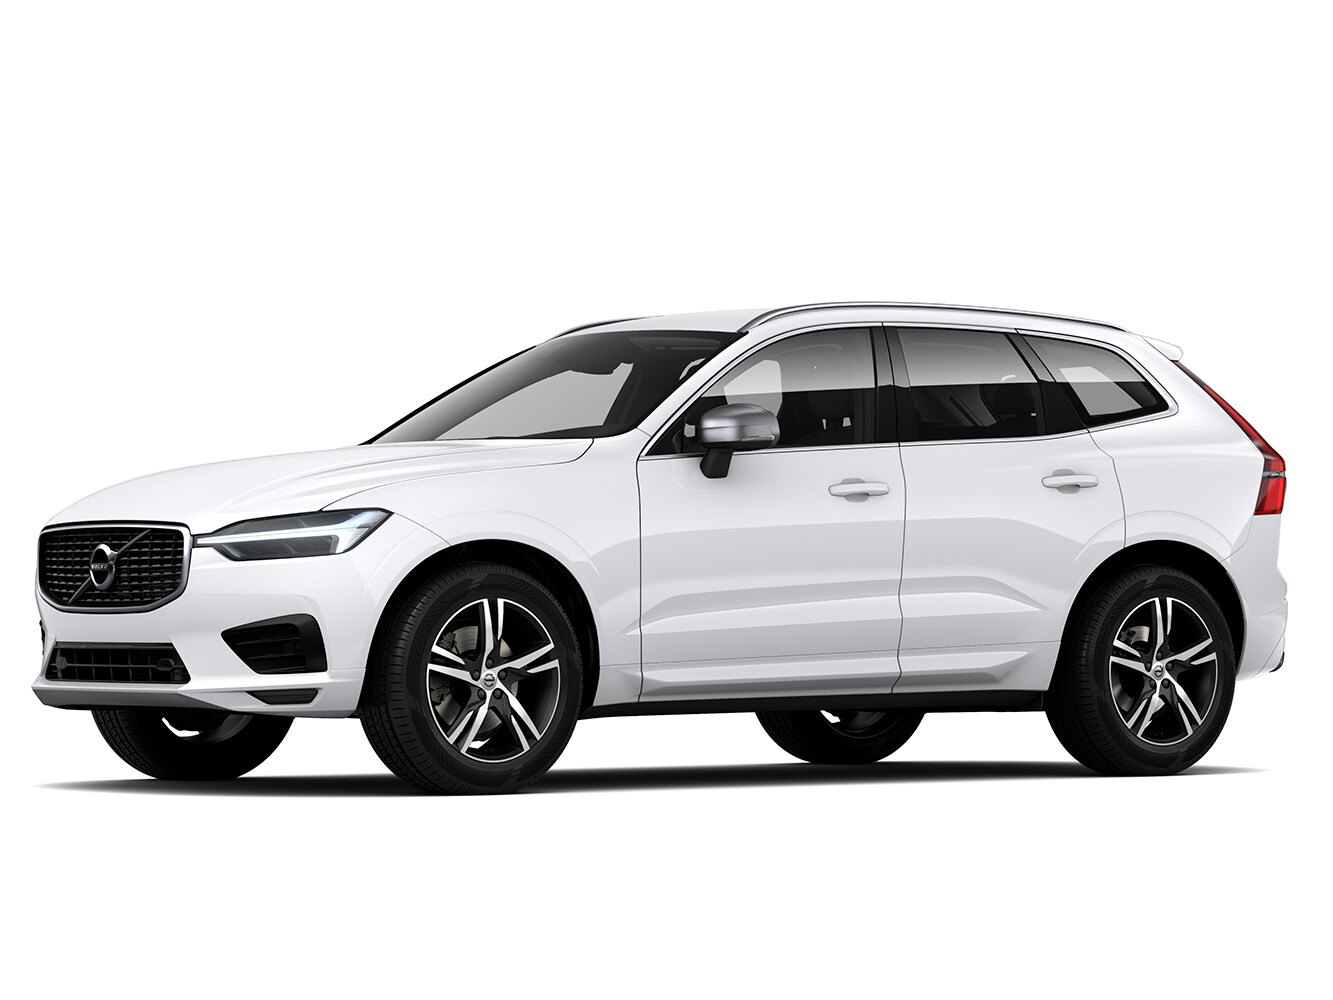 The Volvo XC60 R-Design trim